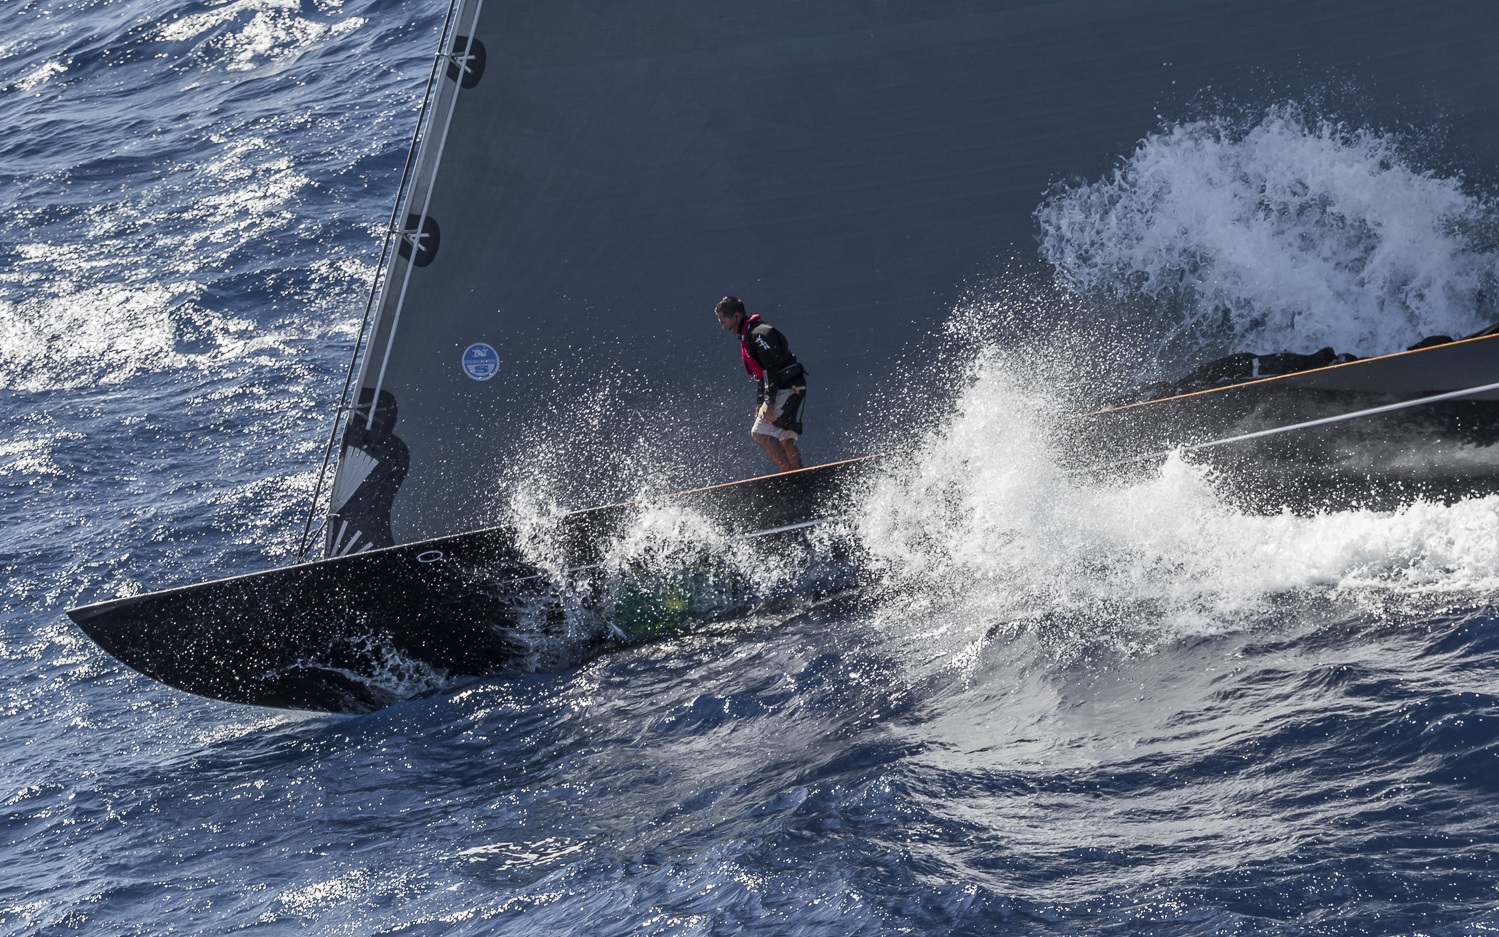 Maxi Yacht Rolex Cup & Rolex Maxi 72 Worlds -  Il video di Preview online - NEWS - Yacht Club Costa Smeralda